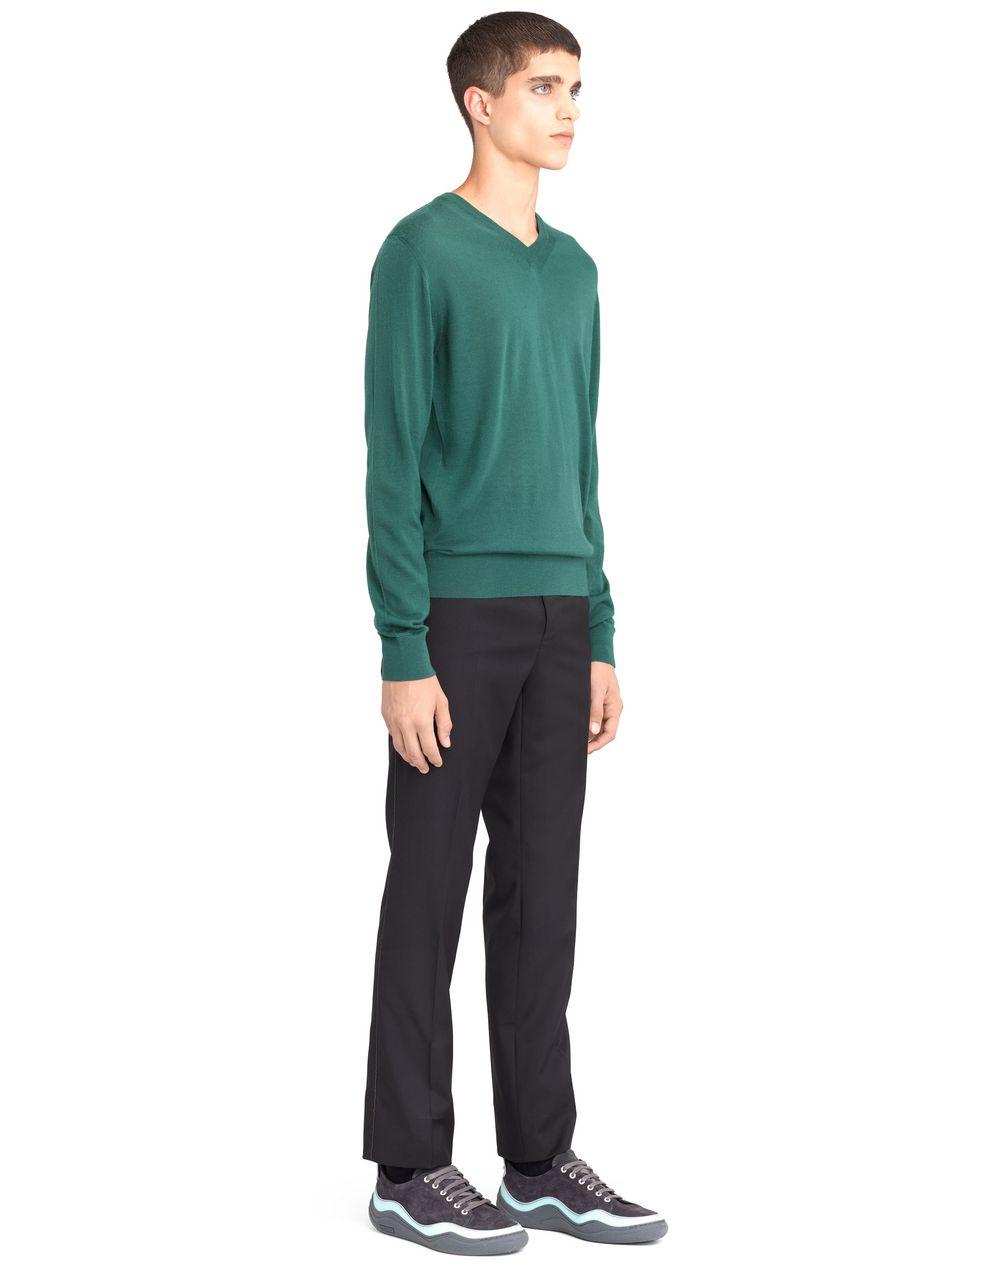 V-NECK CASHMERE SWEATER - Lanvin